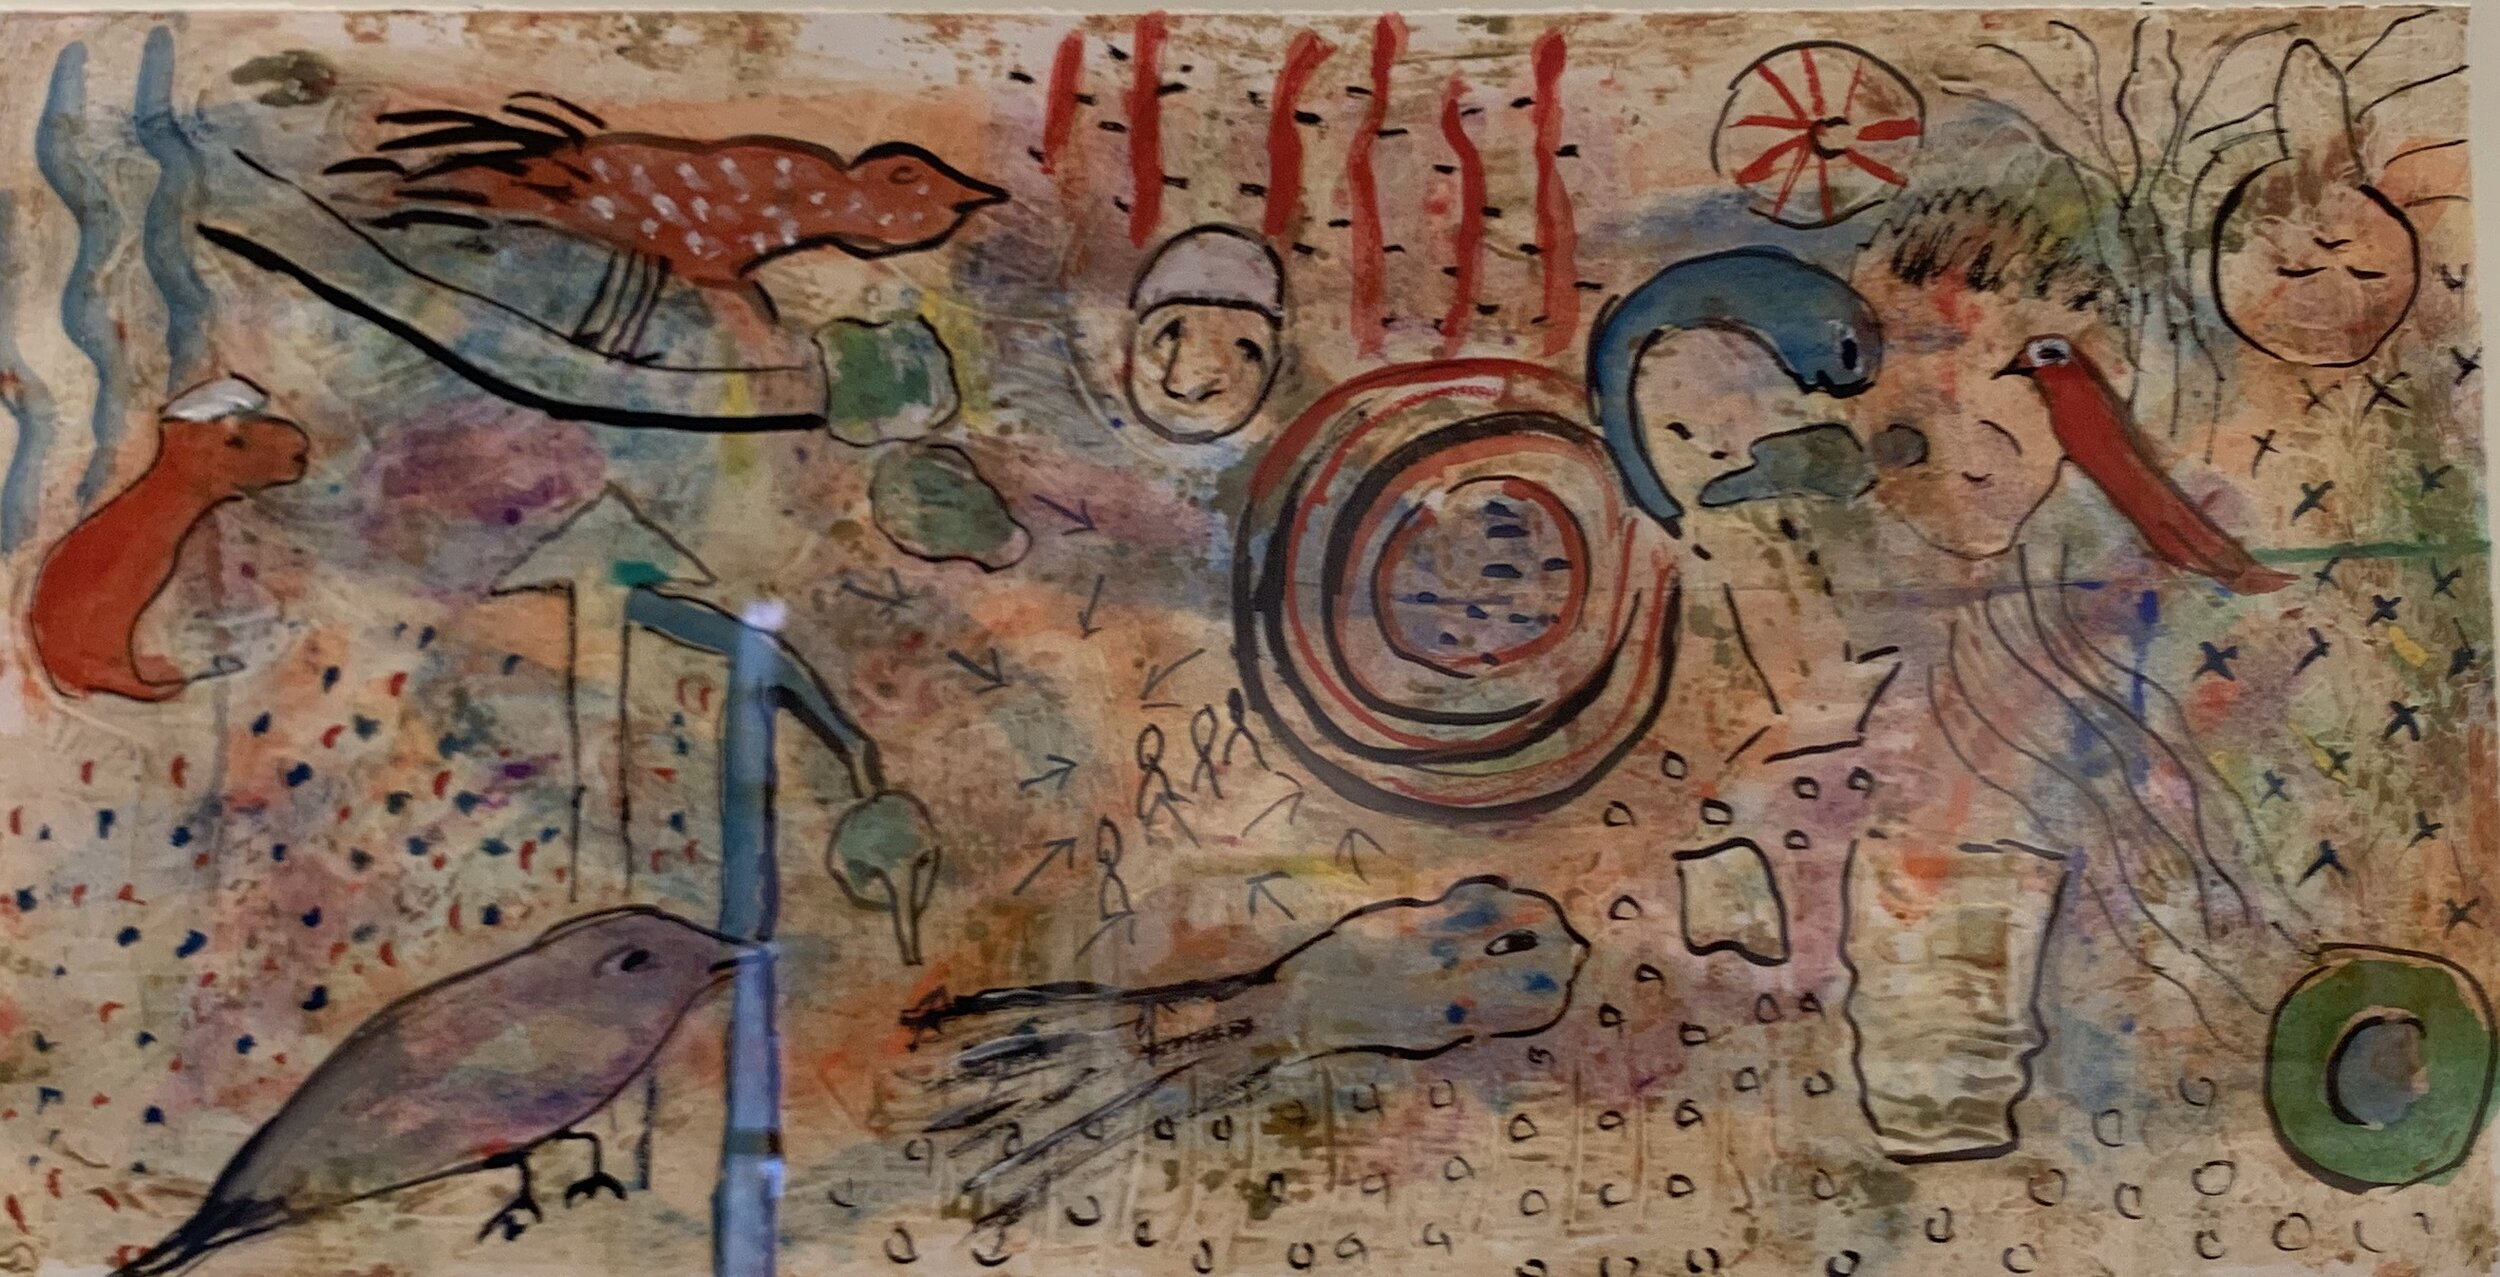 """Riddling Legends Series IV #1, Watercolor Monotype, 25""""X33""""  Horizontal monotype watercolor painting with simplified shapes of humans, animals and organic shapes on tan background"""